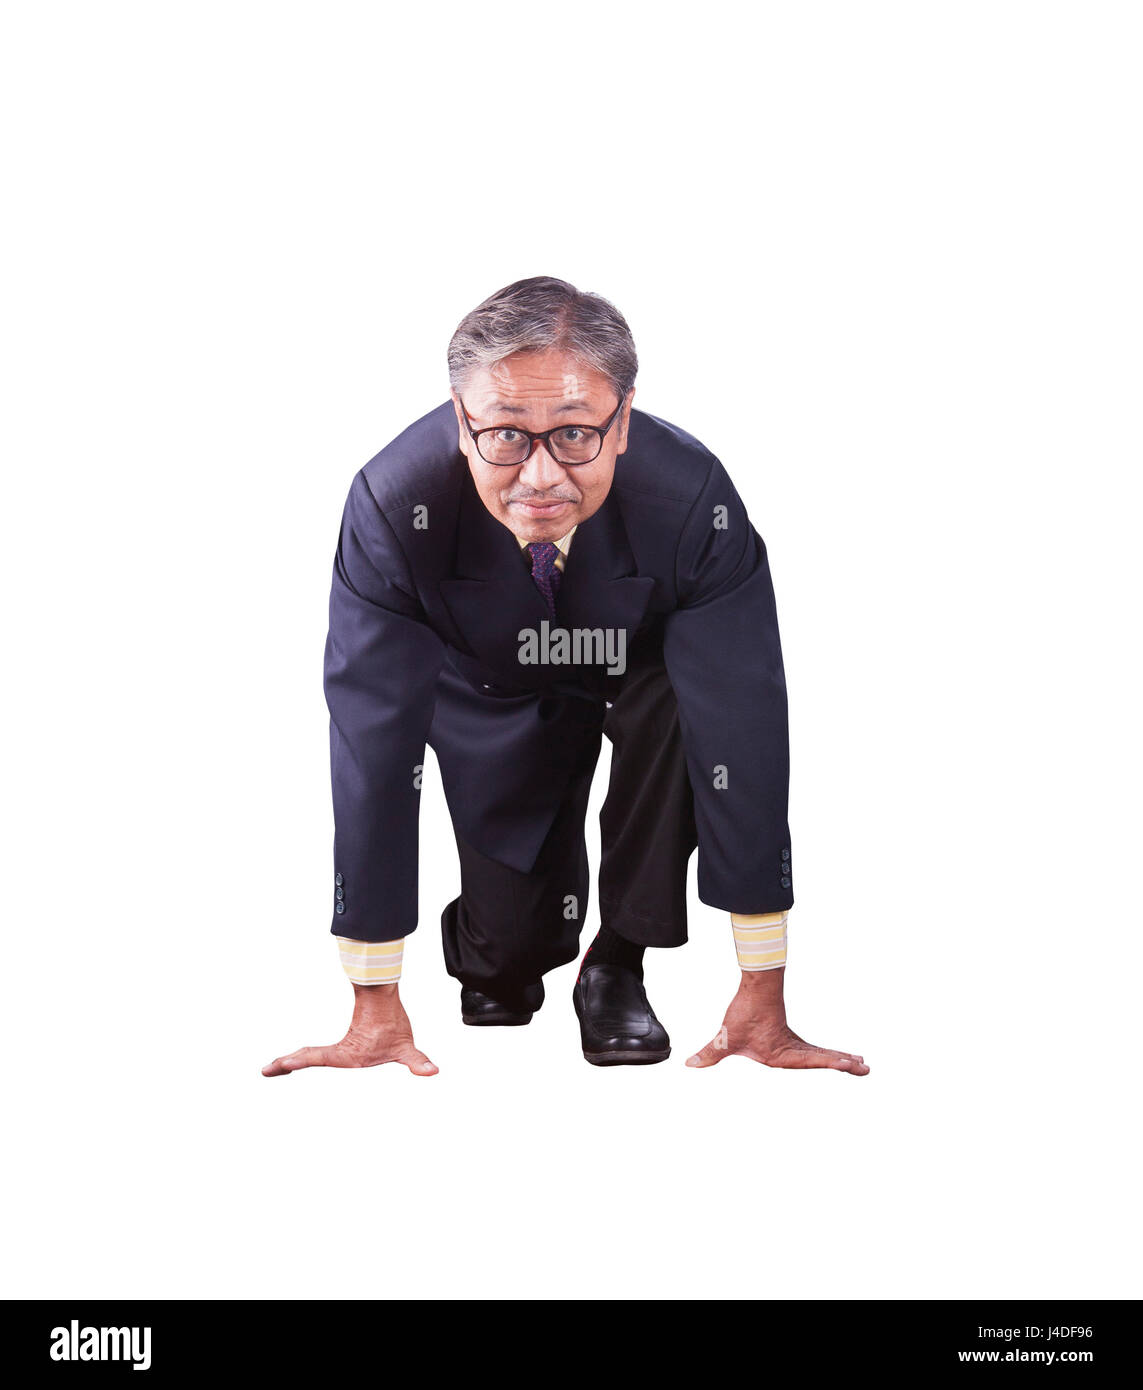 60s years asian business man posting as runner on start approach for running competition isolate white background - Stock Image